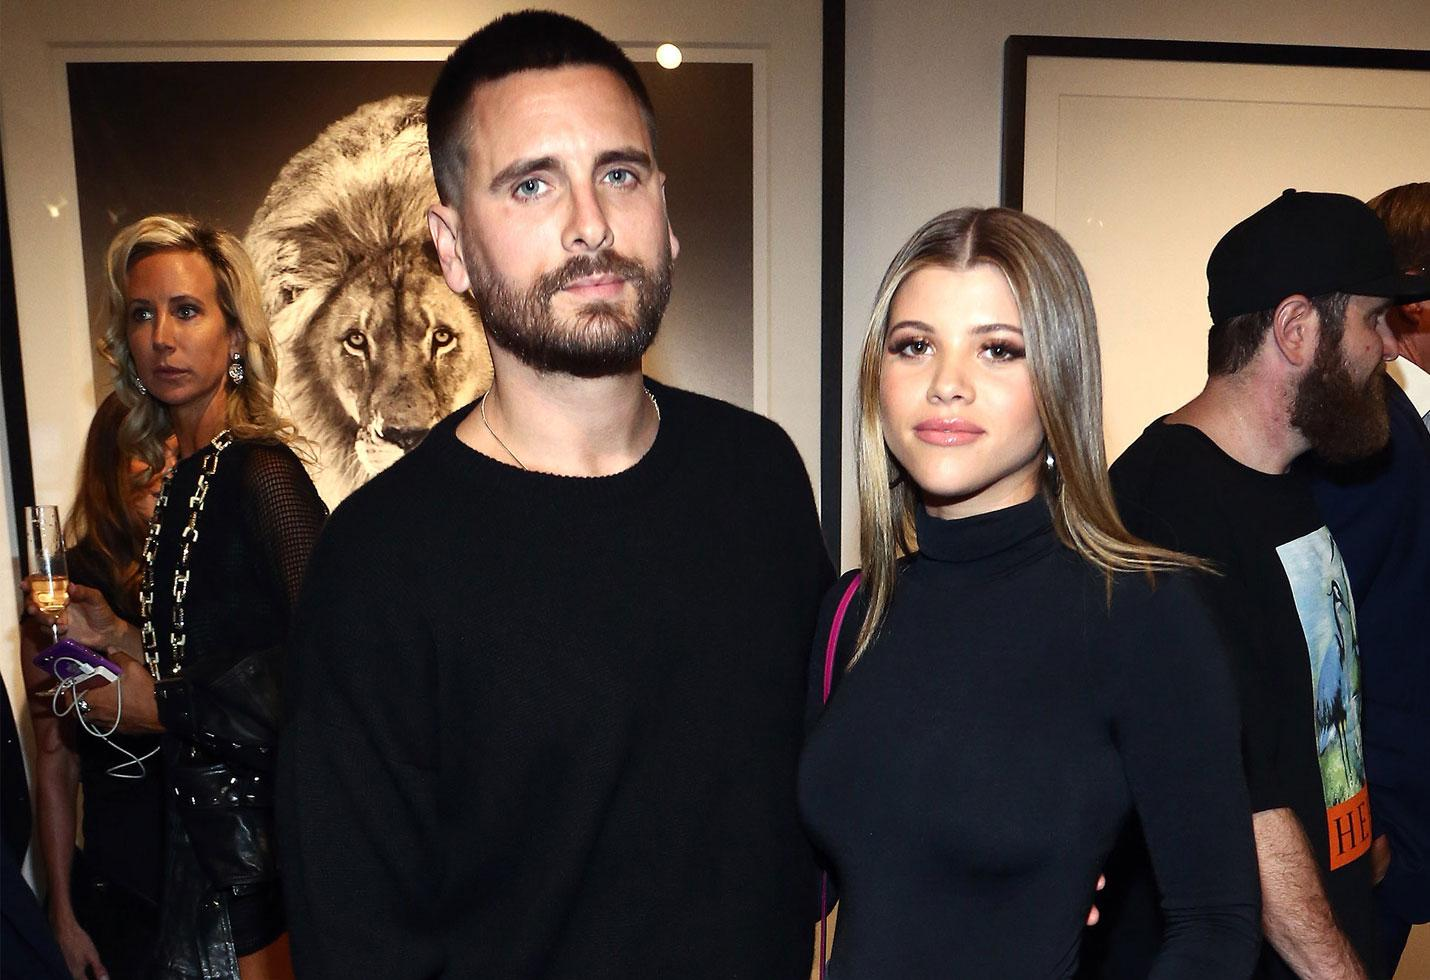 Sofia Richie Reportedly Pressuring Scott Disick To Put A Ring On It Is An Engagement Coming Soon?